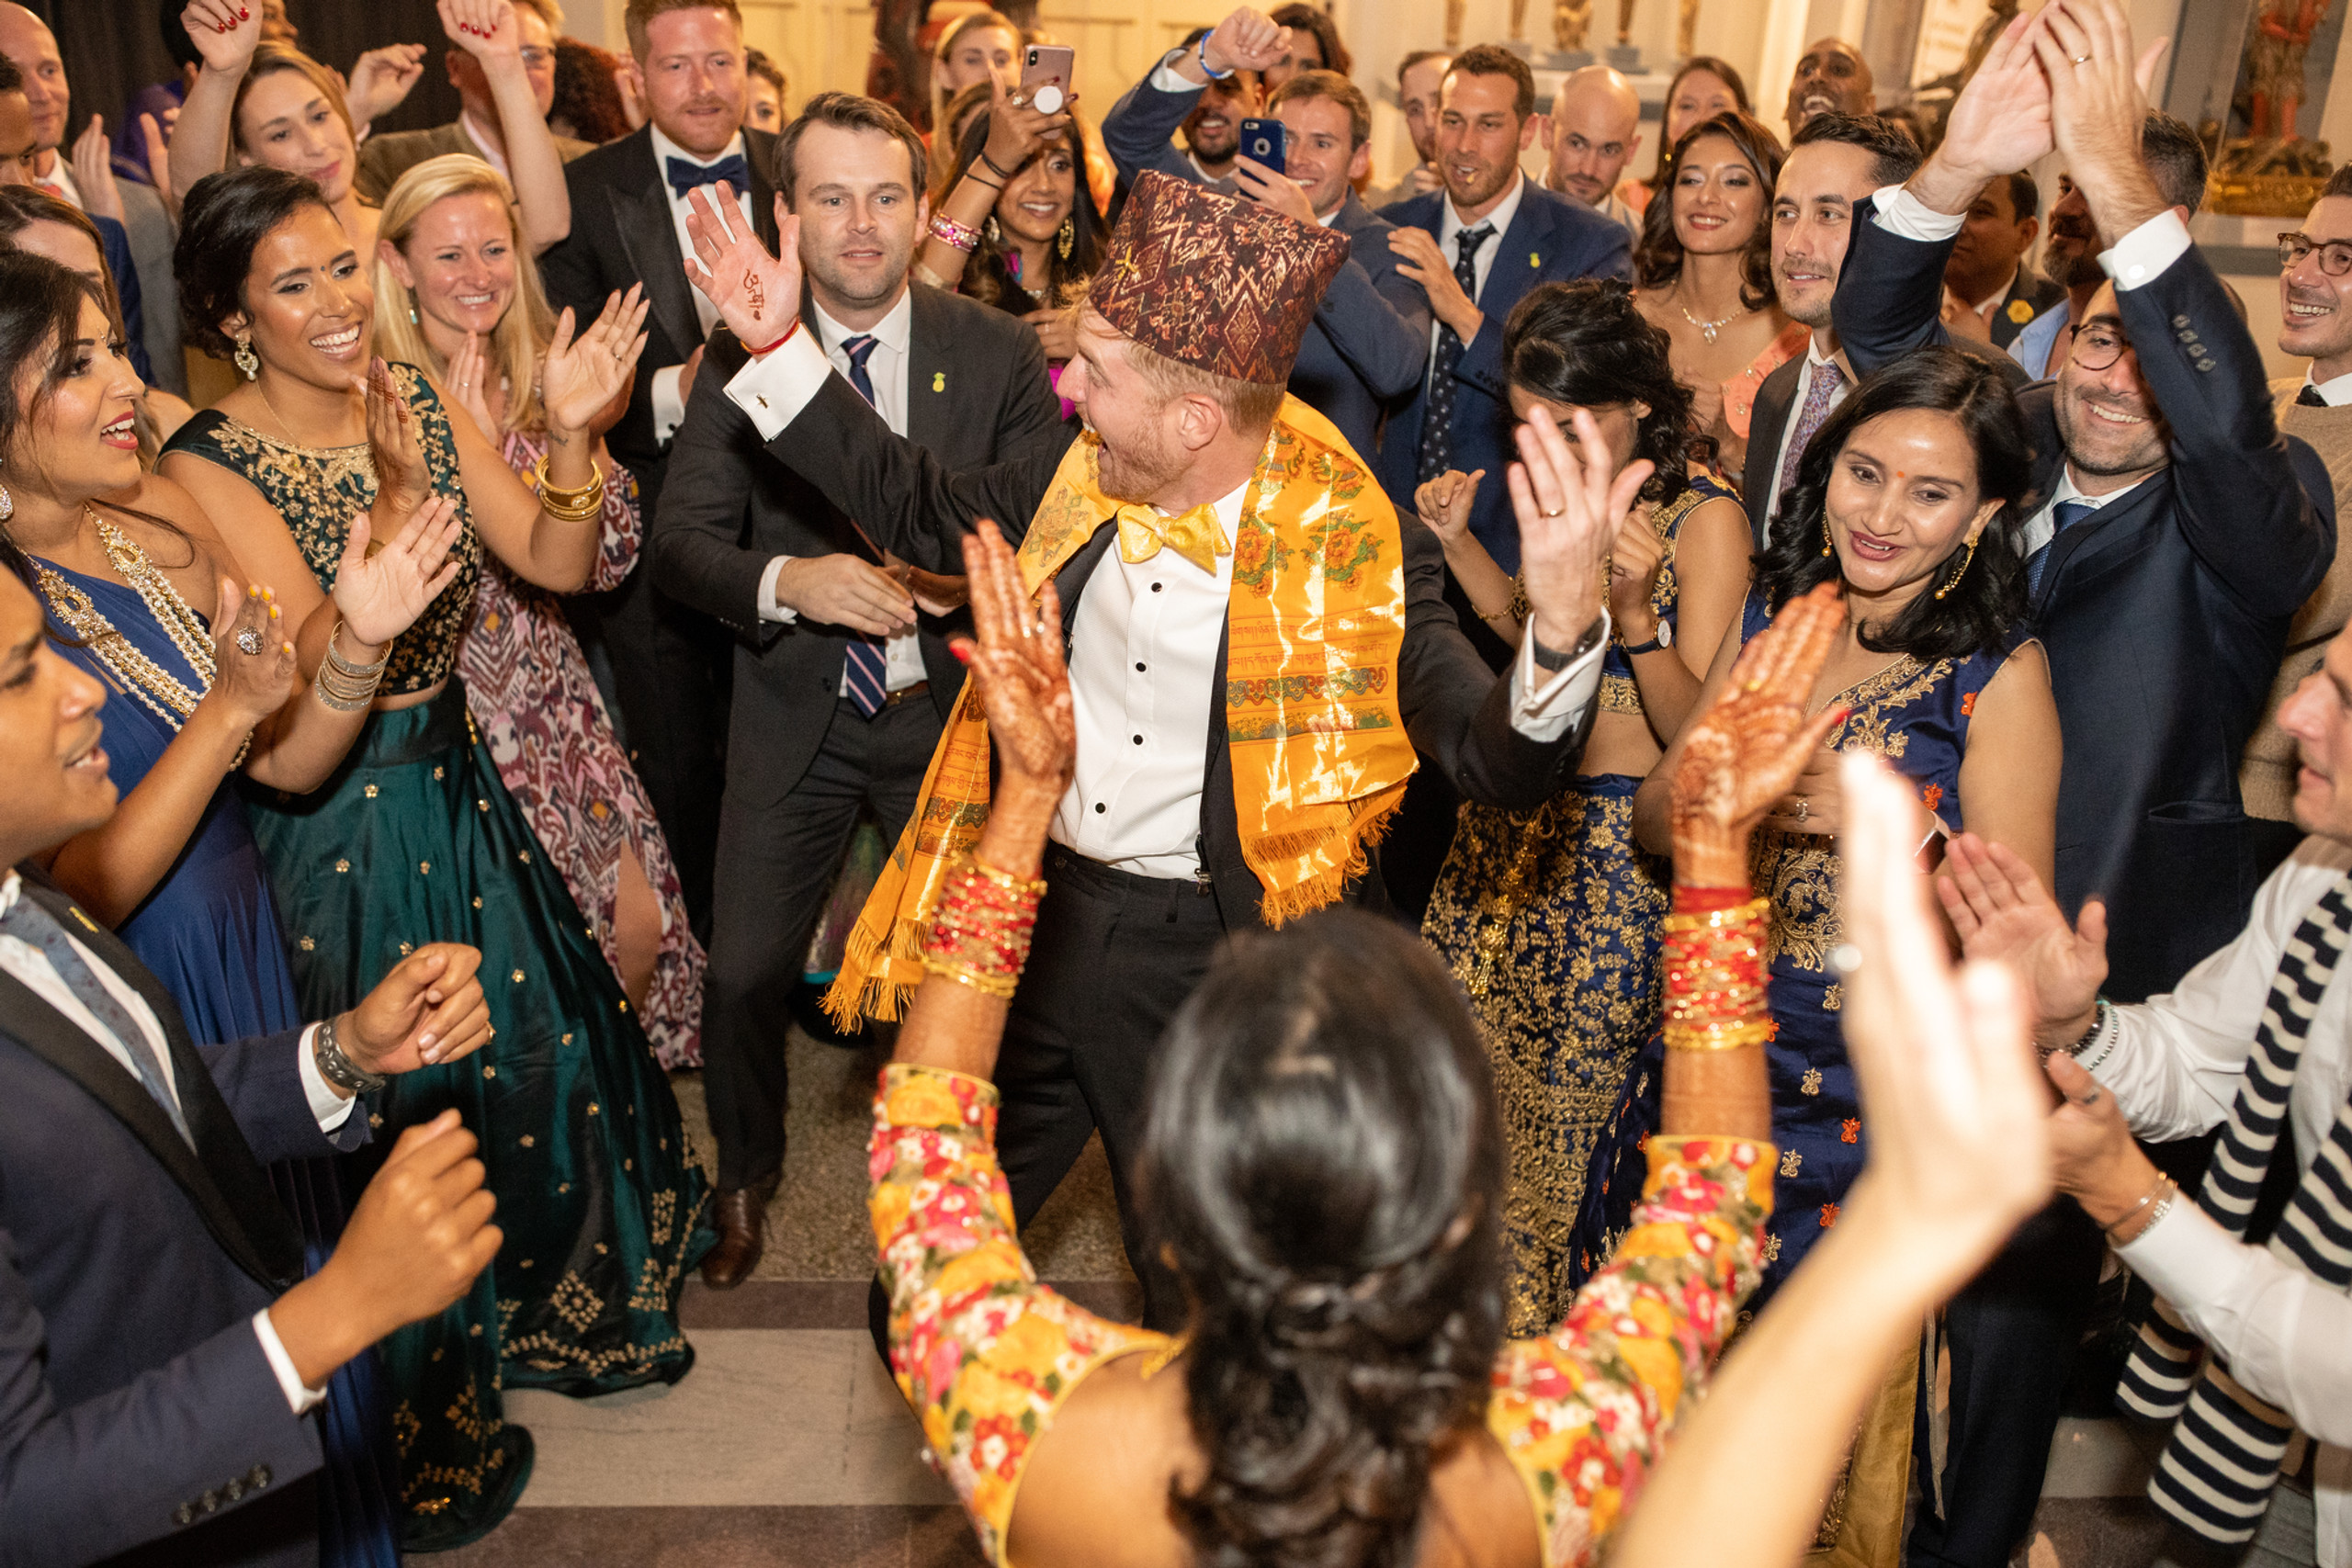 The bride and groom join in the flashmob during the wedding reception at the Penn Museum in Philadelphia, Pennsylvania.